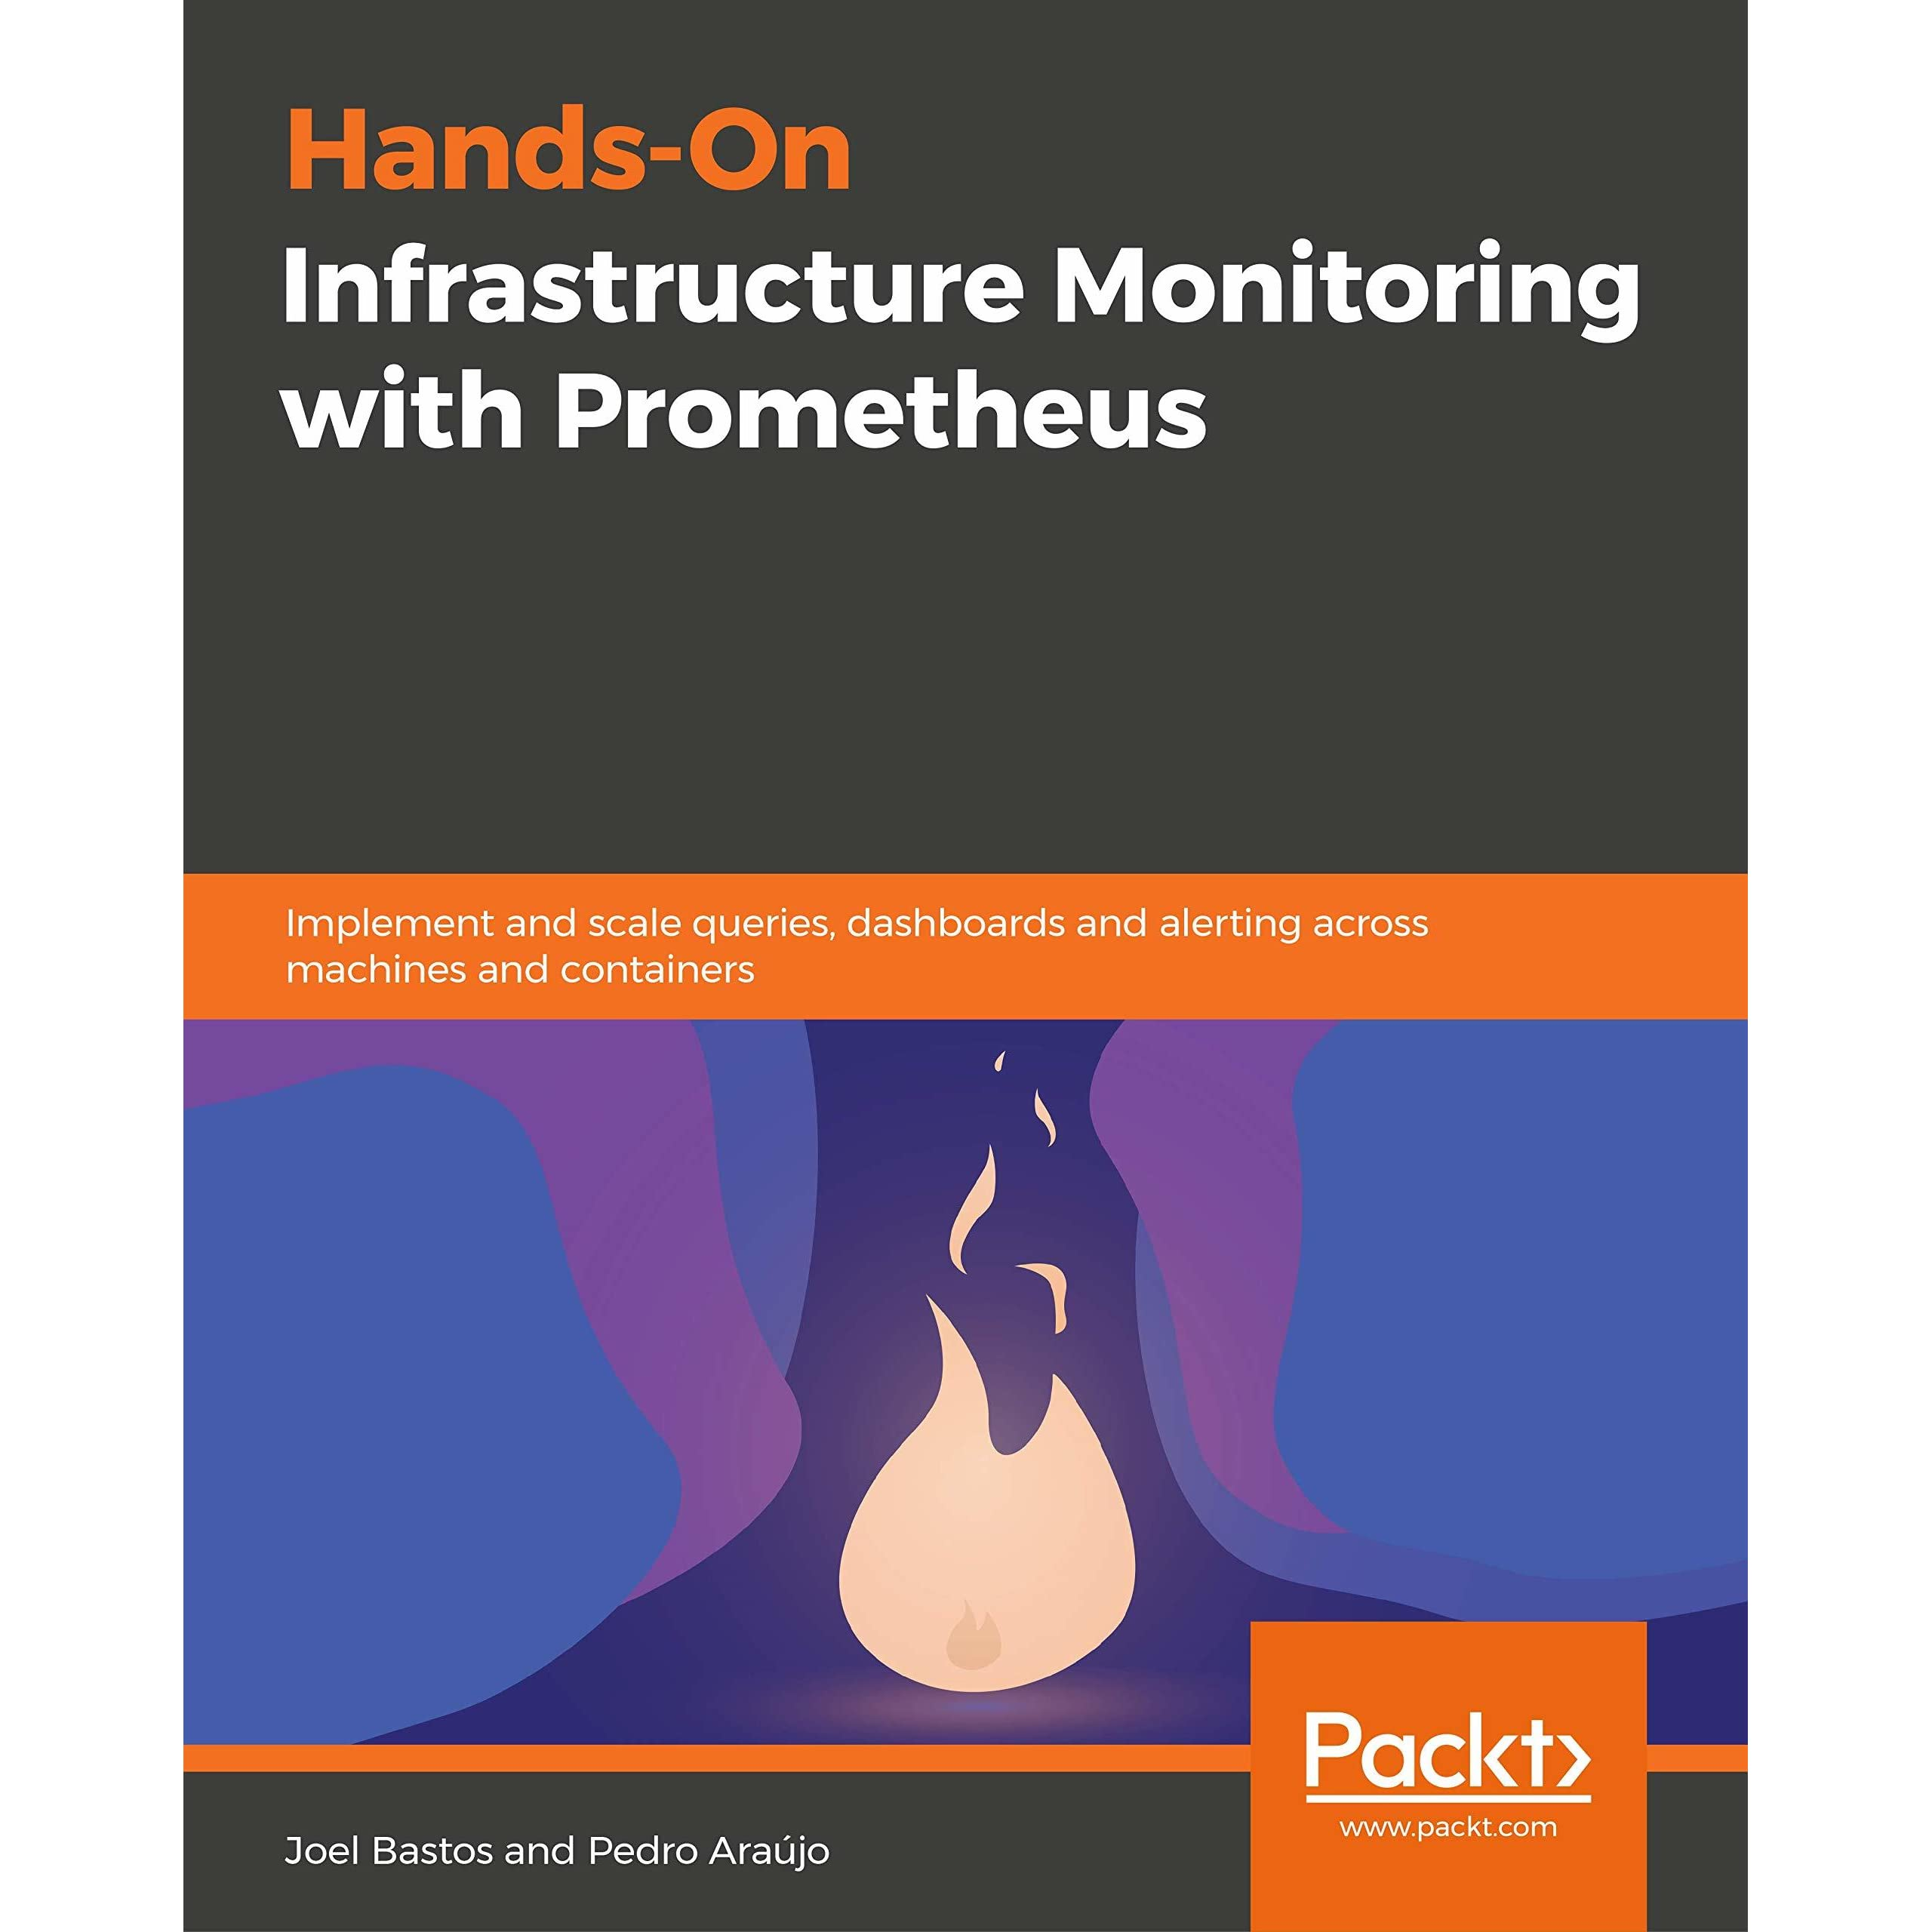 Hands-On Infrastructure Monitoring with Prometheus: Implement and